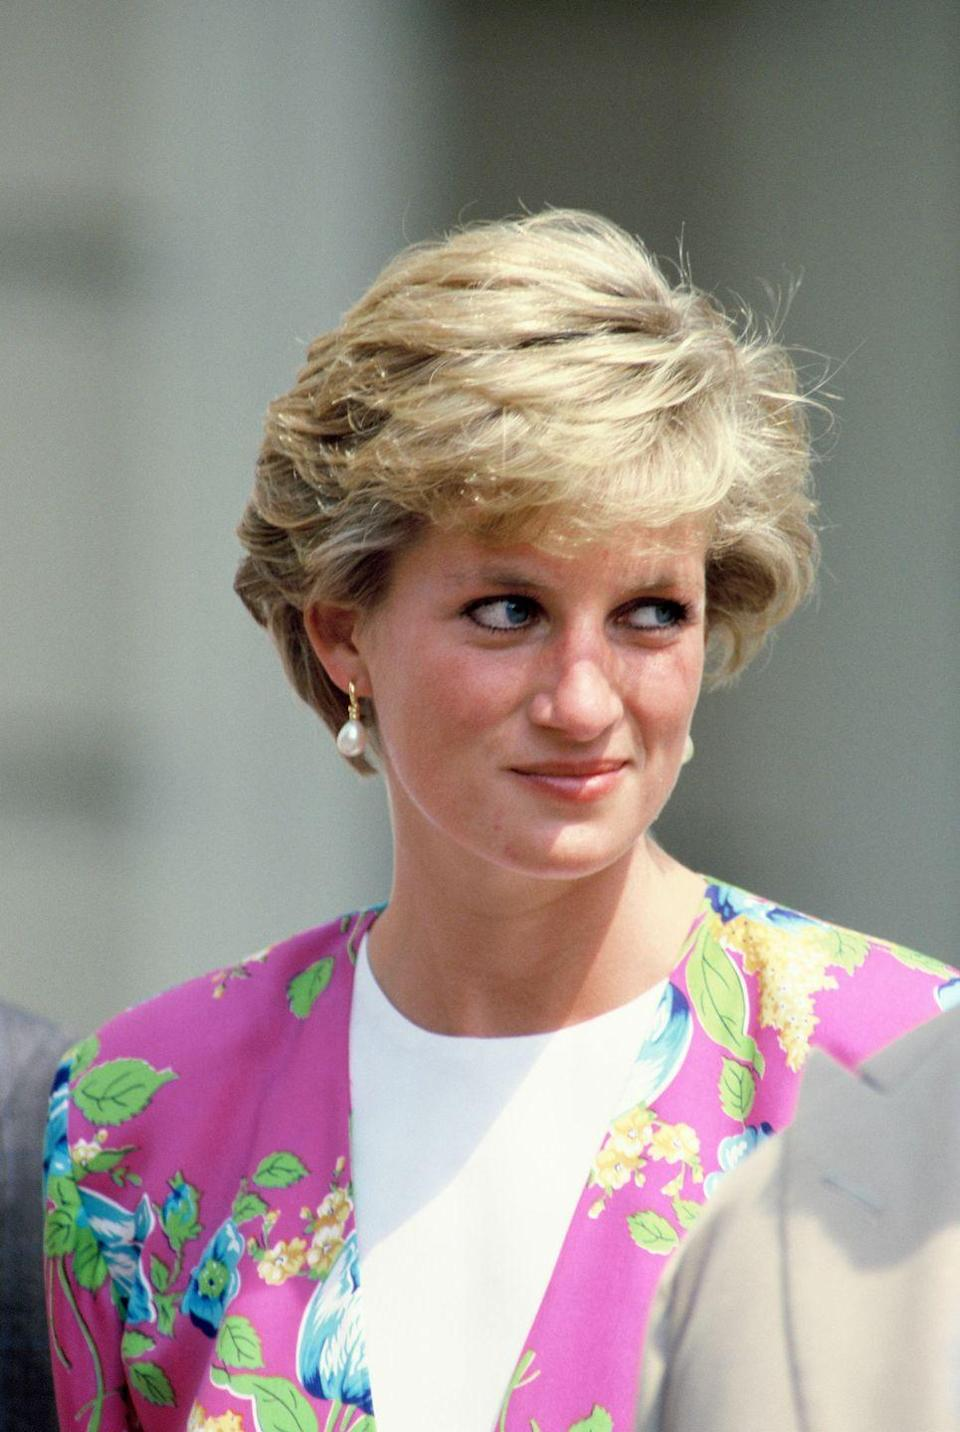 "<p>Ever the trendsetter, Princess Diana influenced women of the world to go short with her famous crop created by <a href=""http://www.harpersbazaar.com/beauty/hair/news/a13447/princess-diana-haircut-sam-mcknight/"" rel=""nofollow noopener"" target=""_blank"" data-ylk=""slk:hairstylist Sam McKnight"" class=""link rapid-noclick-resp"">hairstylist Sam McKnight</a>.</p>"